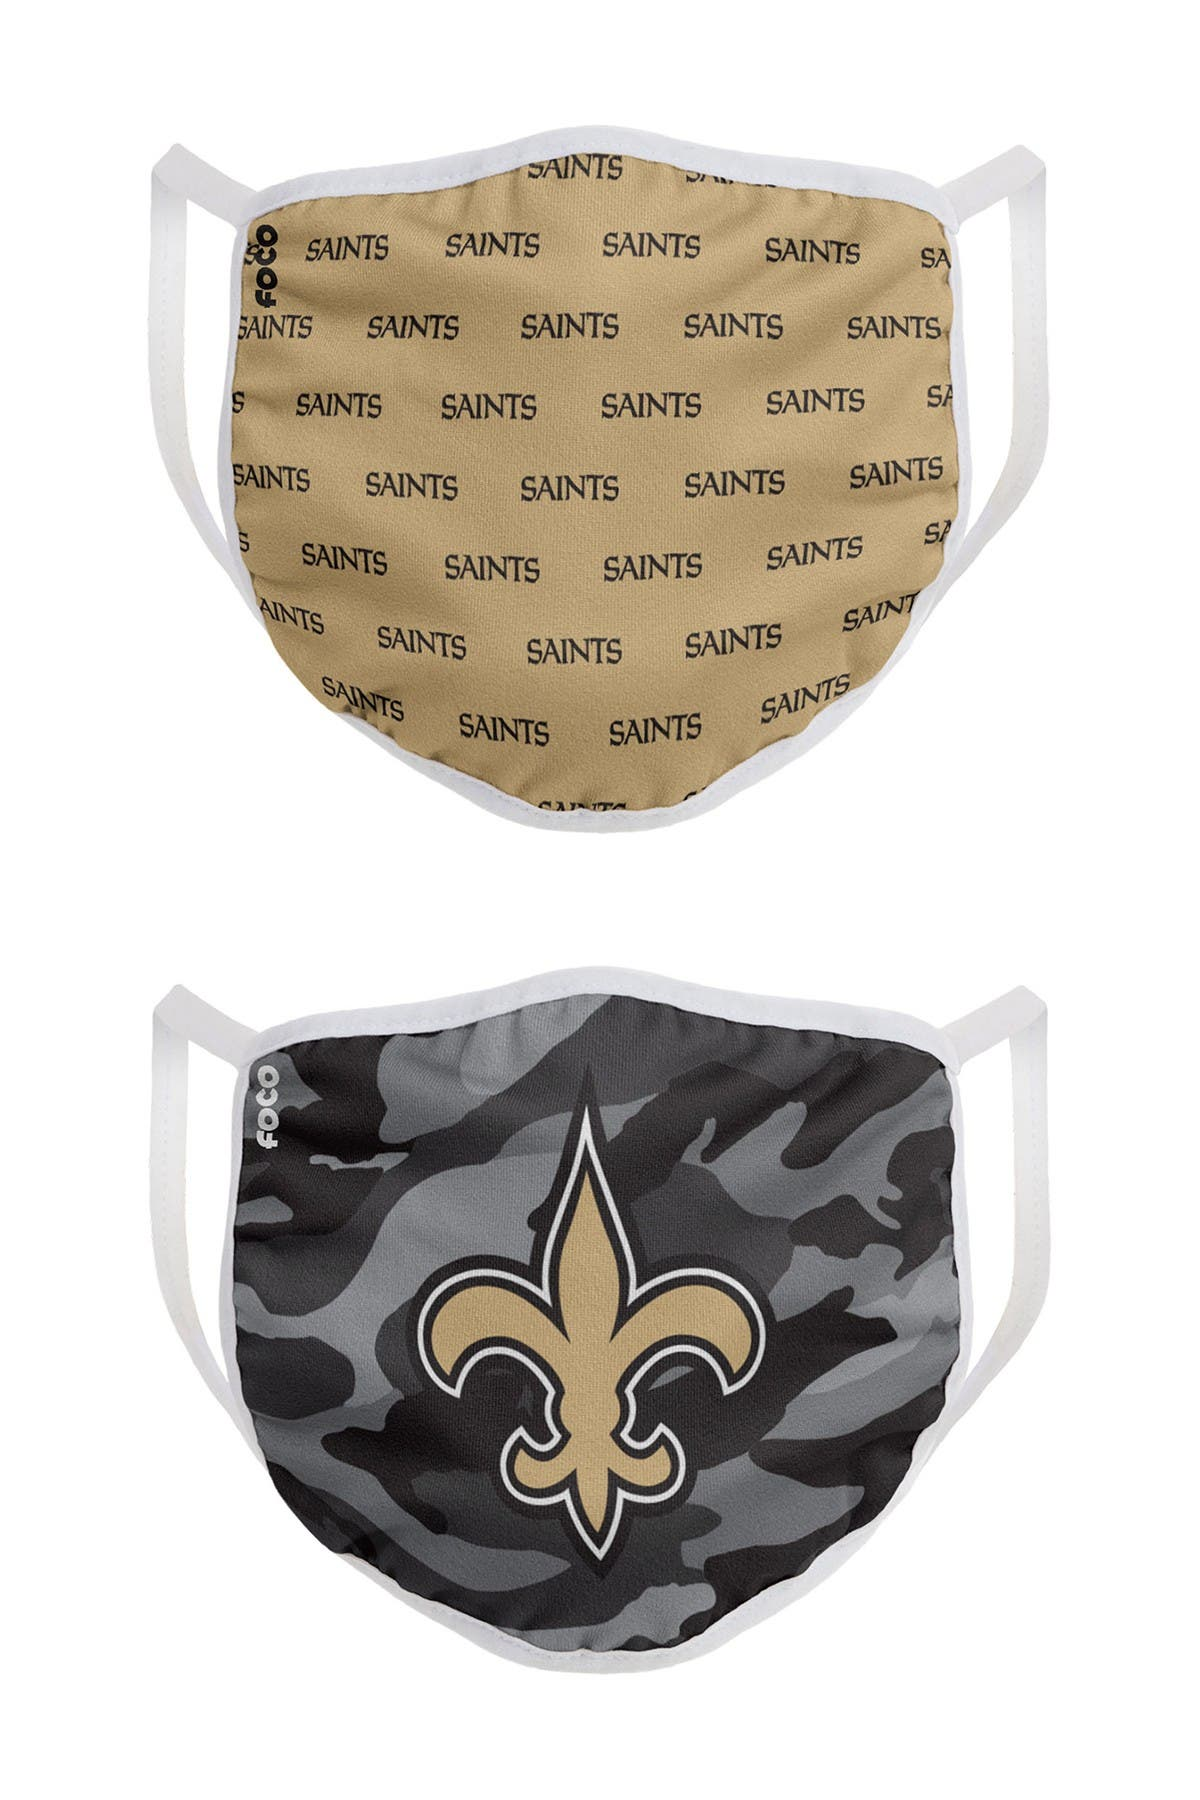 Image of FOCO NFL New Orleans Saints Clutch Printed Face Cover - Pack of 2